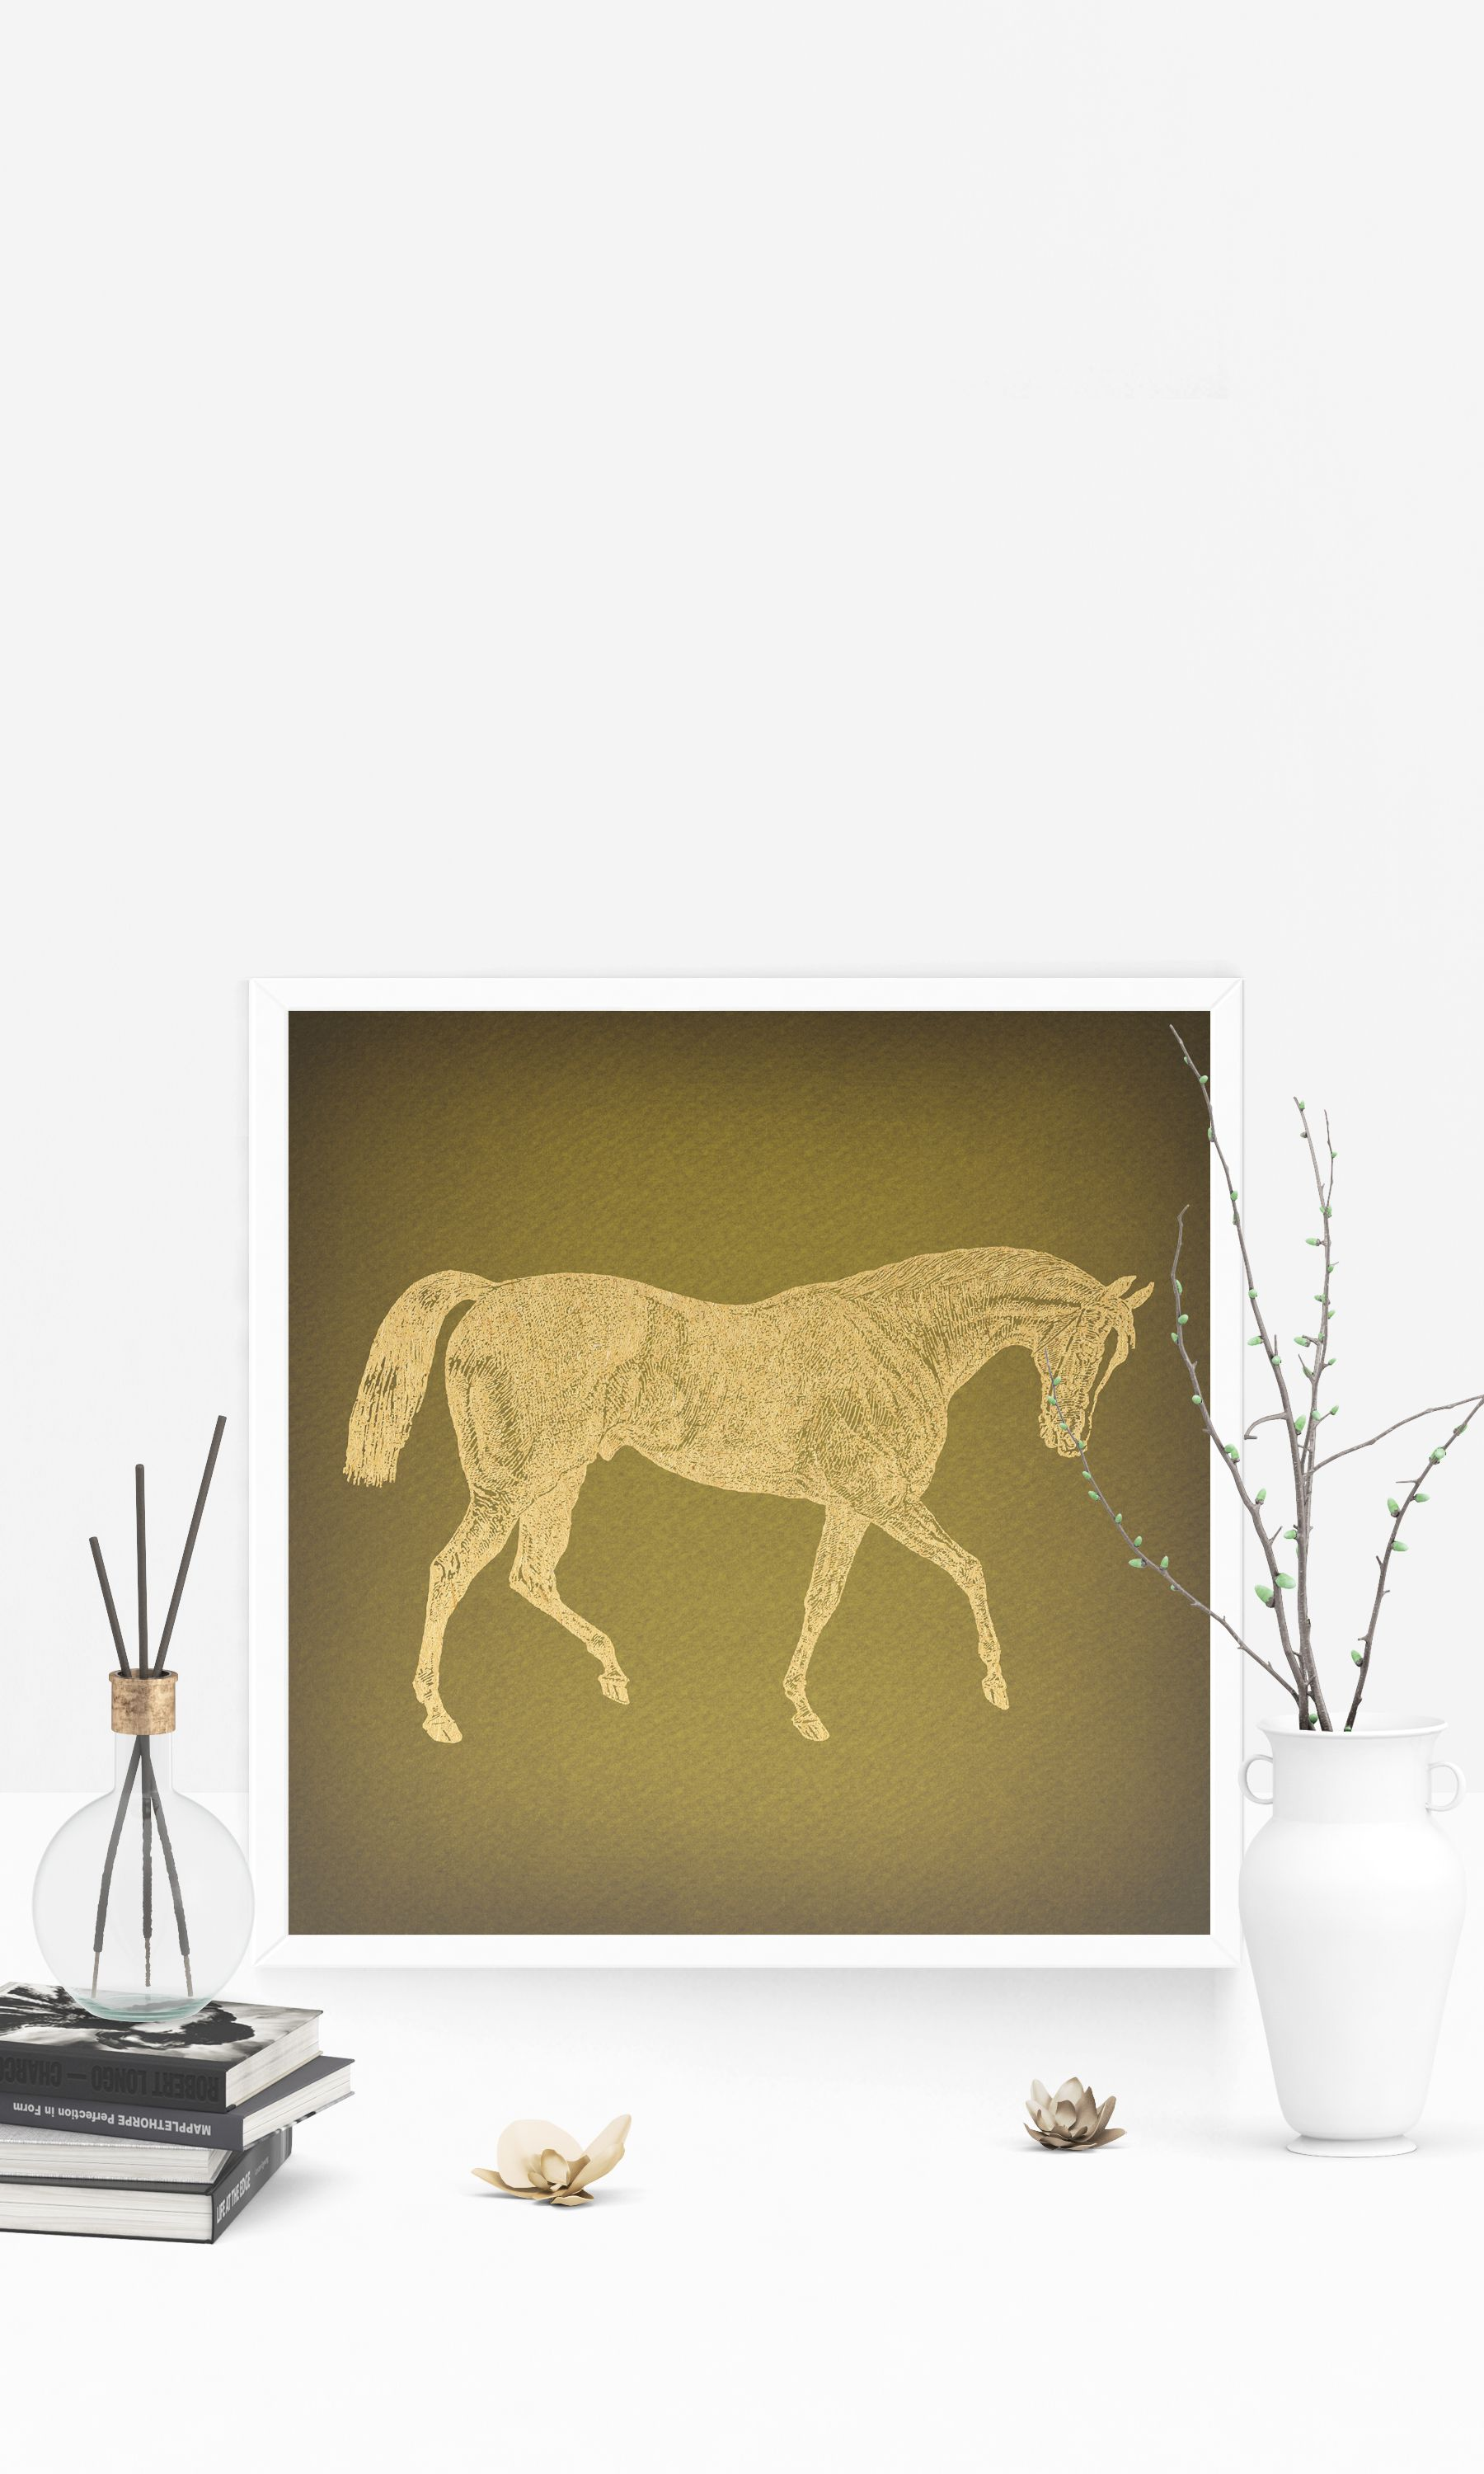 Classic Vintage Horse Wall Art for Farm Home Style Decoration